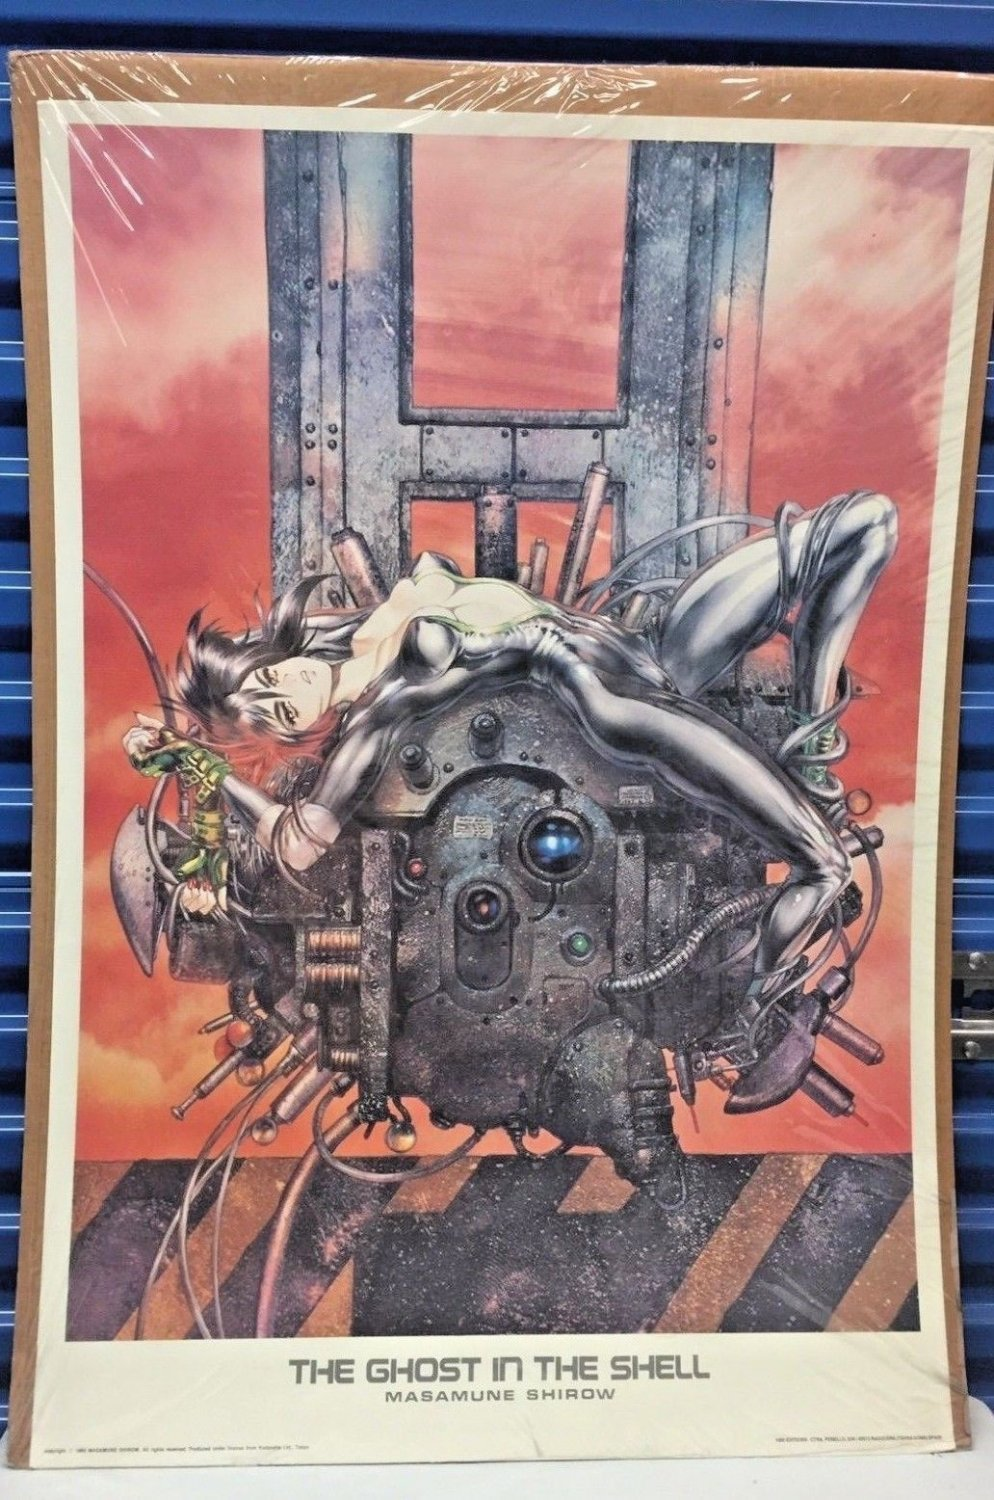 Vintage Ghost In The Shell Litho Masamune Shirow 1993 Limited To 1000 Copies 27 X 38 In